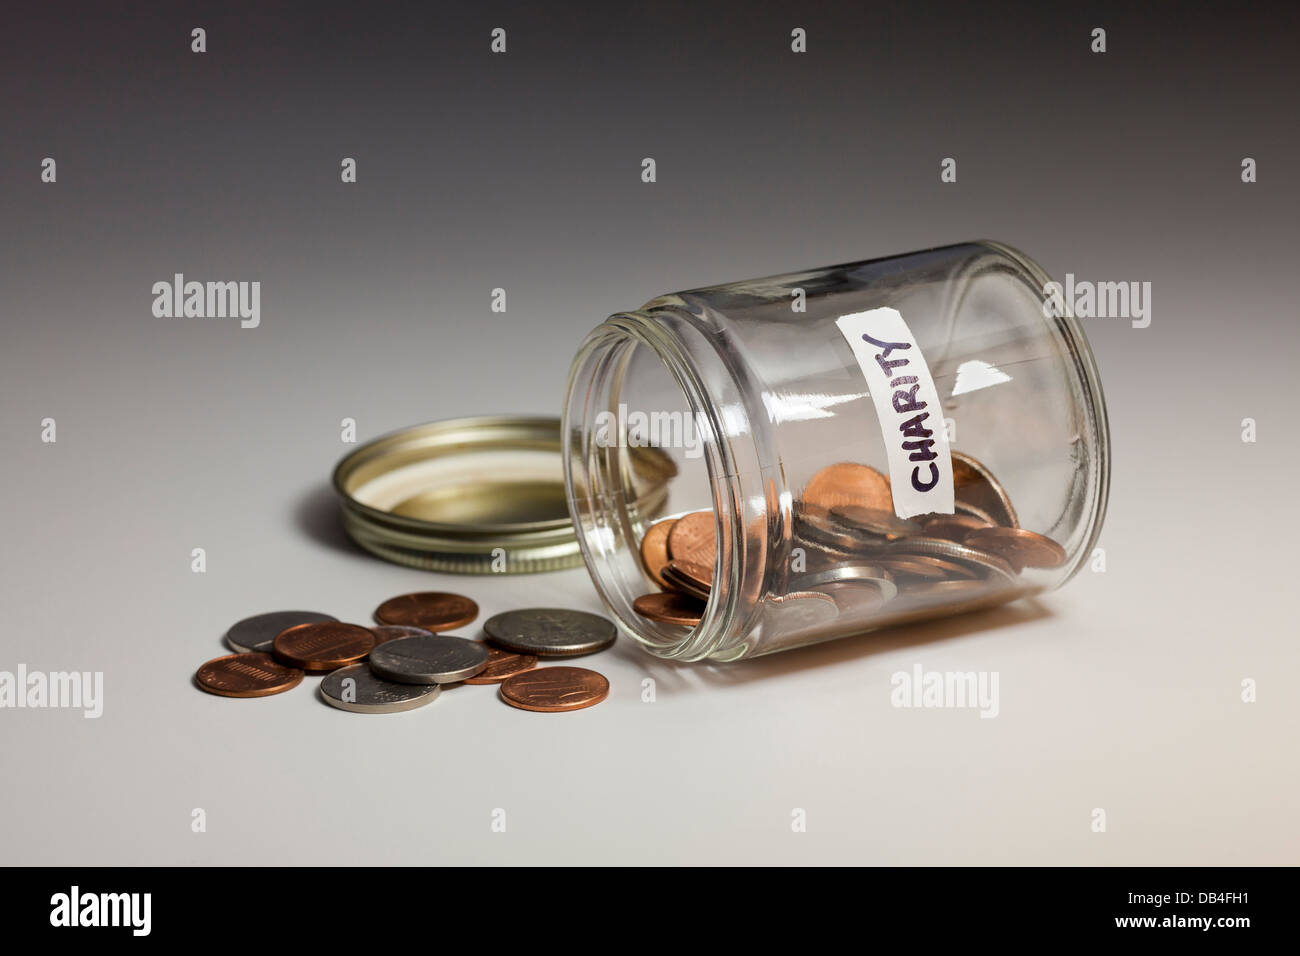 Spilled glass jar of coins saved for charity - USA - Stock Image